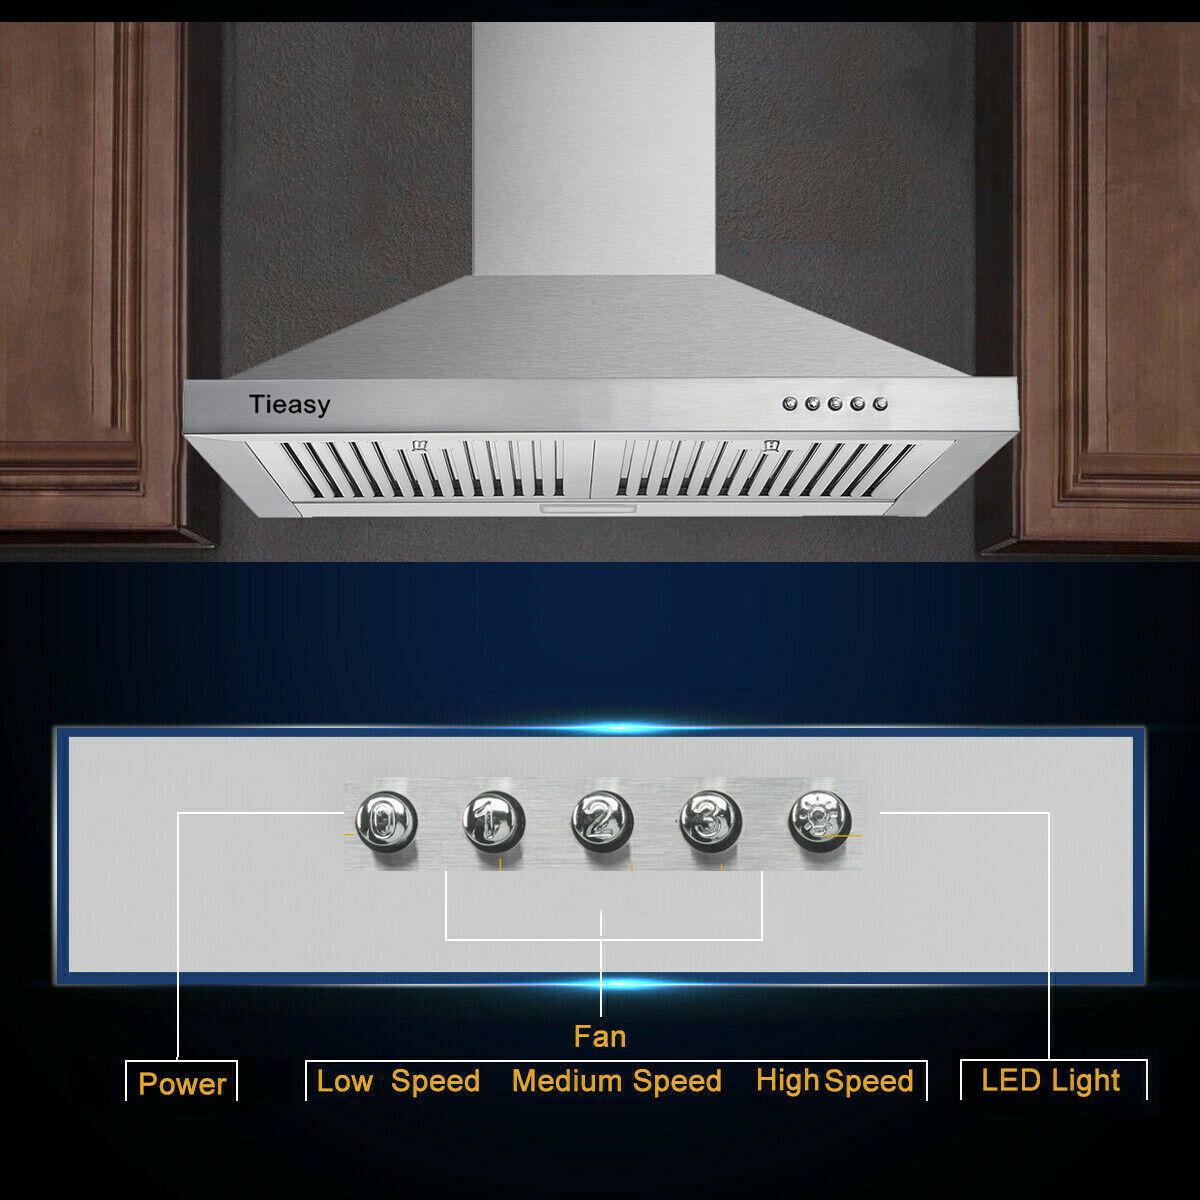 Firegas Wall Mount Range Hood Ducted Ductless Convertible 30 Inch Stainless Steel Hood Fan For Kitchen Stove Vent Hood With Permanent Filters 3 Speed Exhaust Fan Touch Screen Led Lights Appliances Range Hoods